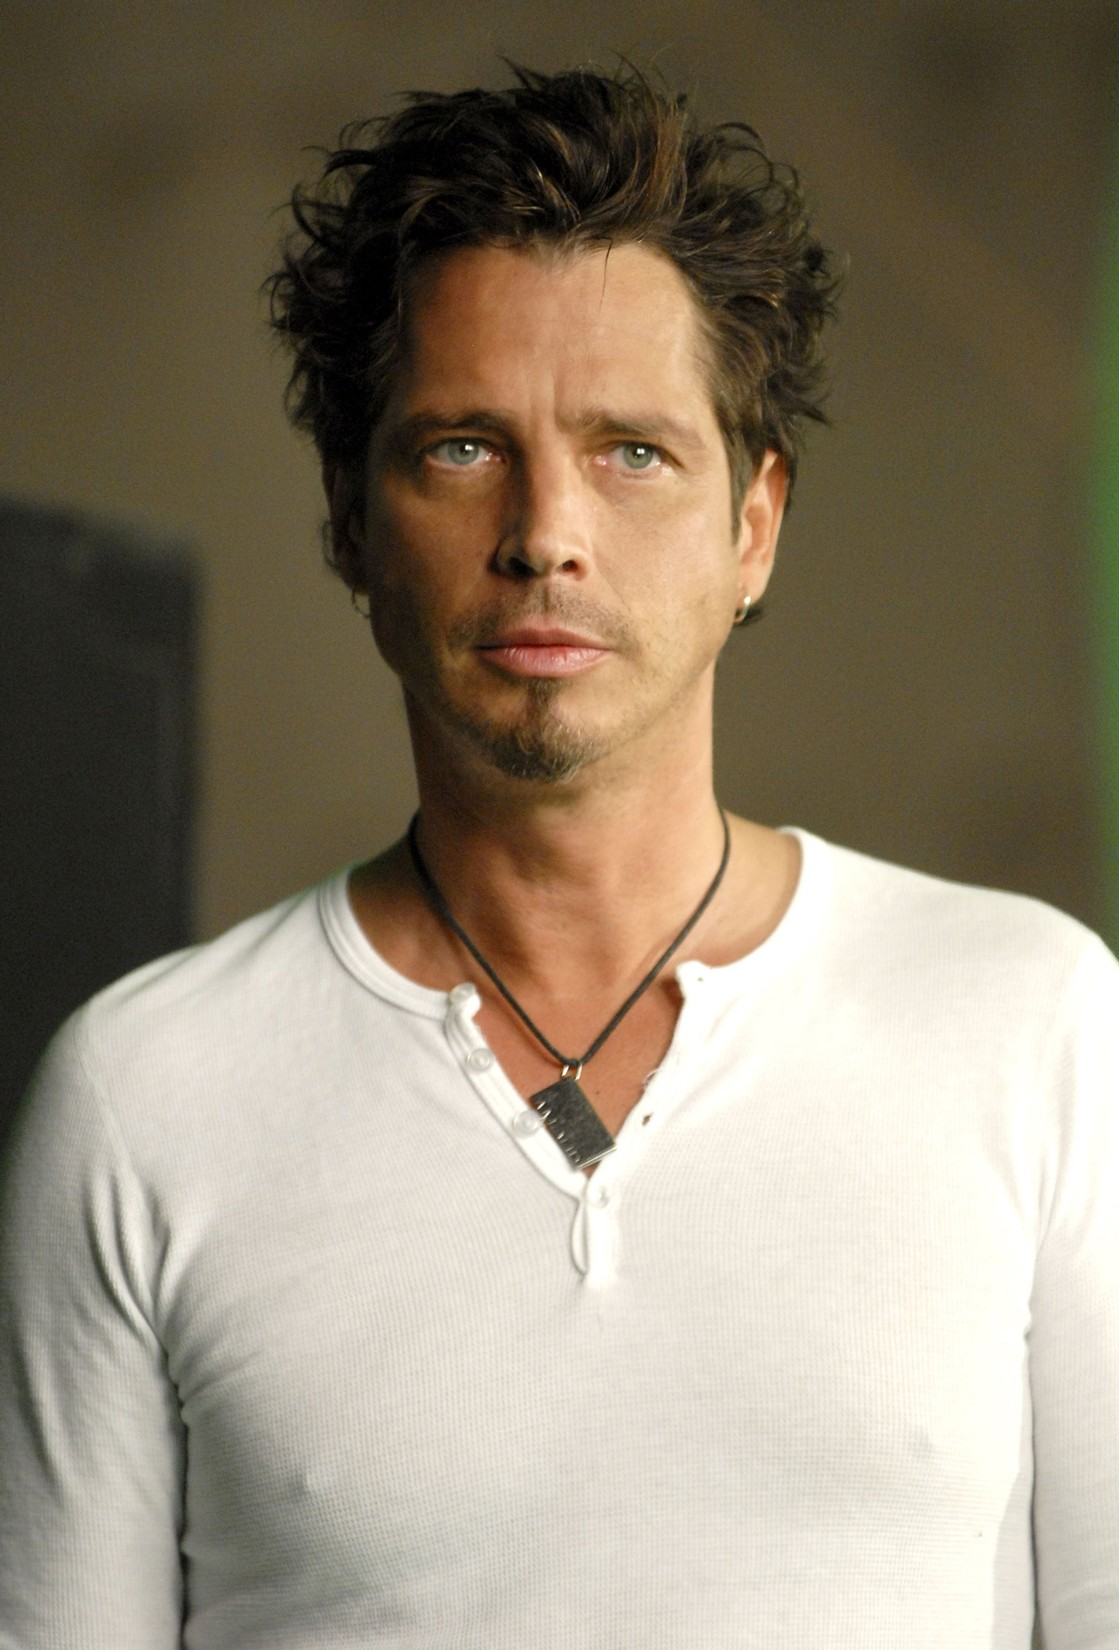 Chris Cornell of Audioslave during Chris Cornell of Audioslave Video Shoot - June 29, 2006 at Sunset Gower Studios in Los Angeles.